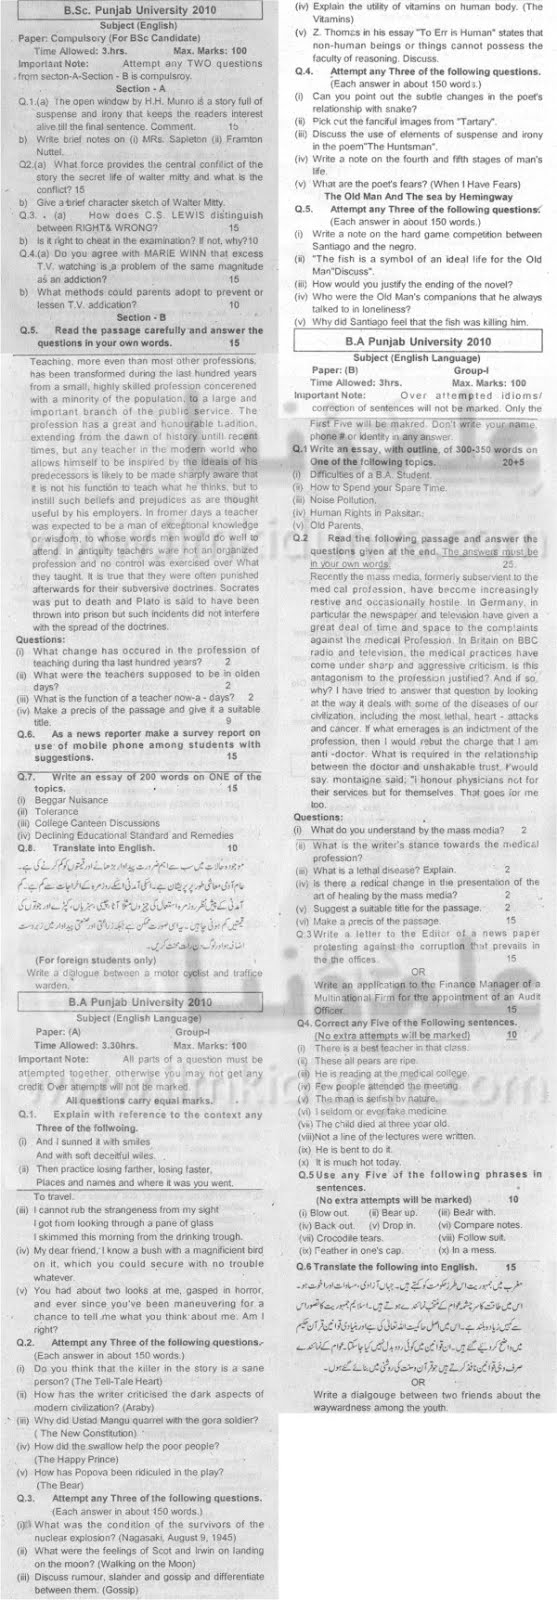 punjab university bsc english compulsory past papers pk punjab university bsc english compulsory past papers 2010